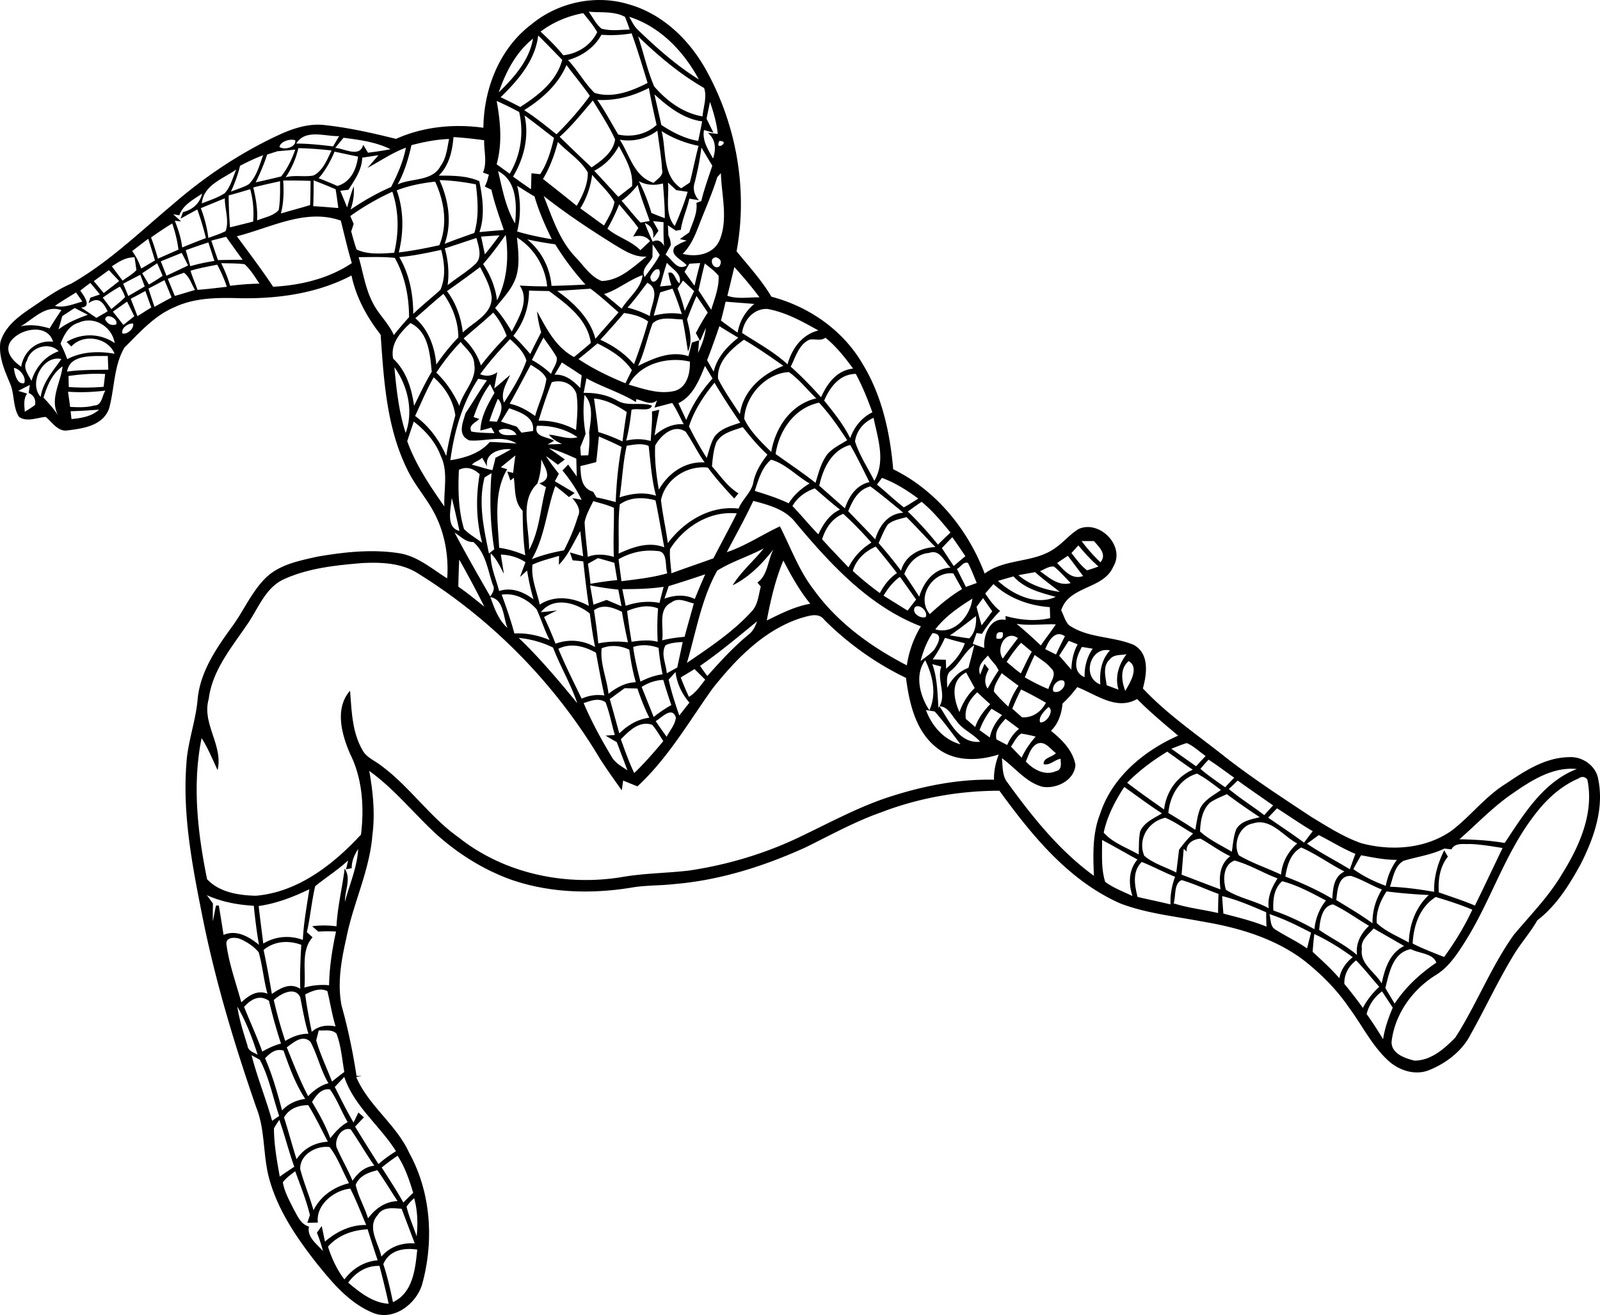 coloring pages for kids abcdefghijklmnopqrstuvwxyz